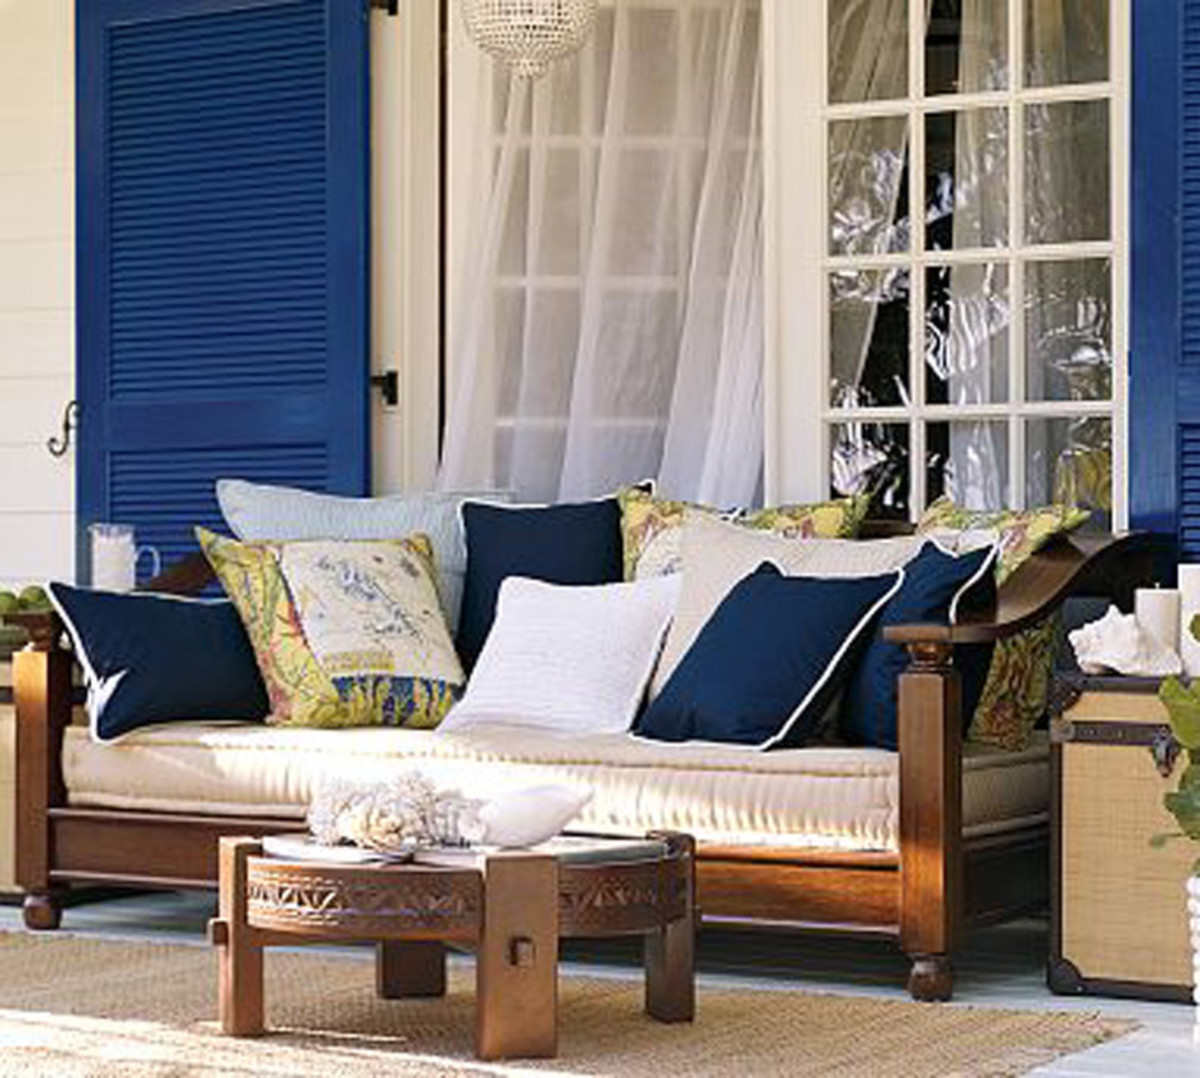 This exotic couch is classic yet relaxed.